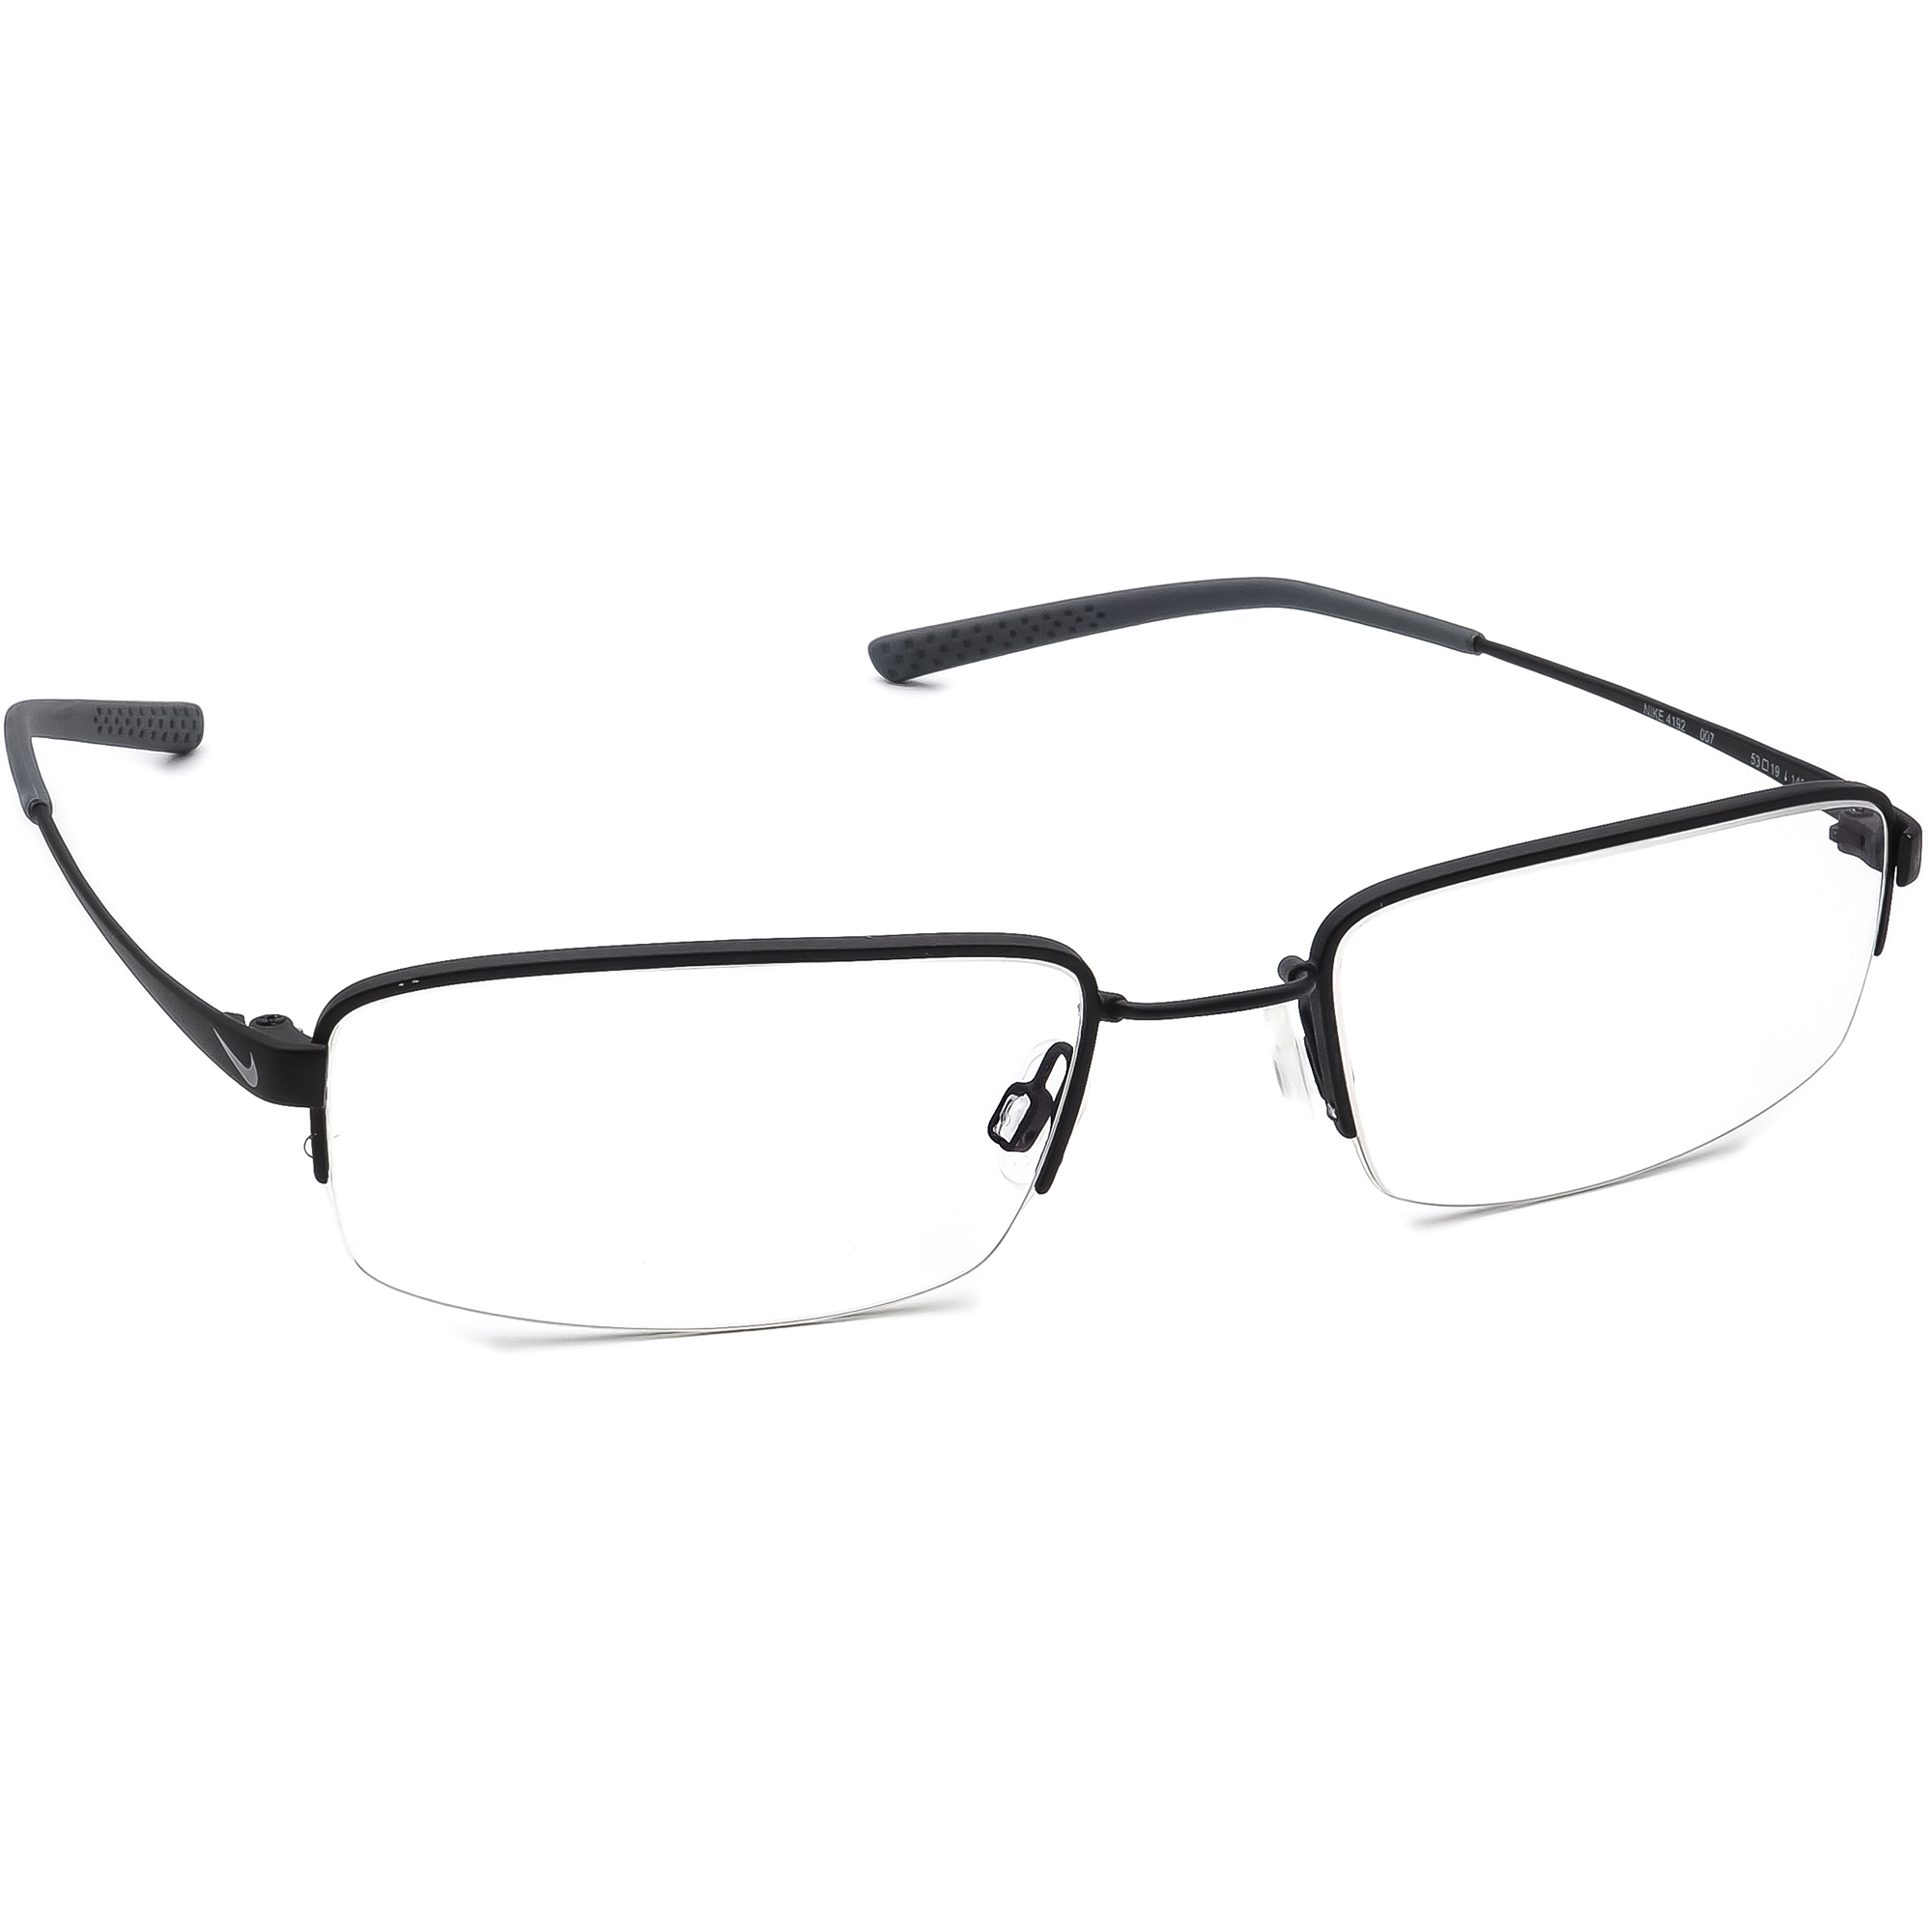 Nike With Flexon 4192 007 Eyeglasses